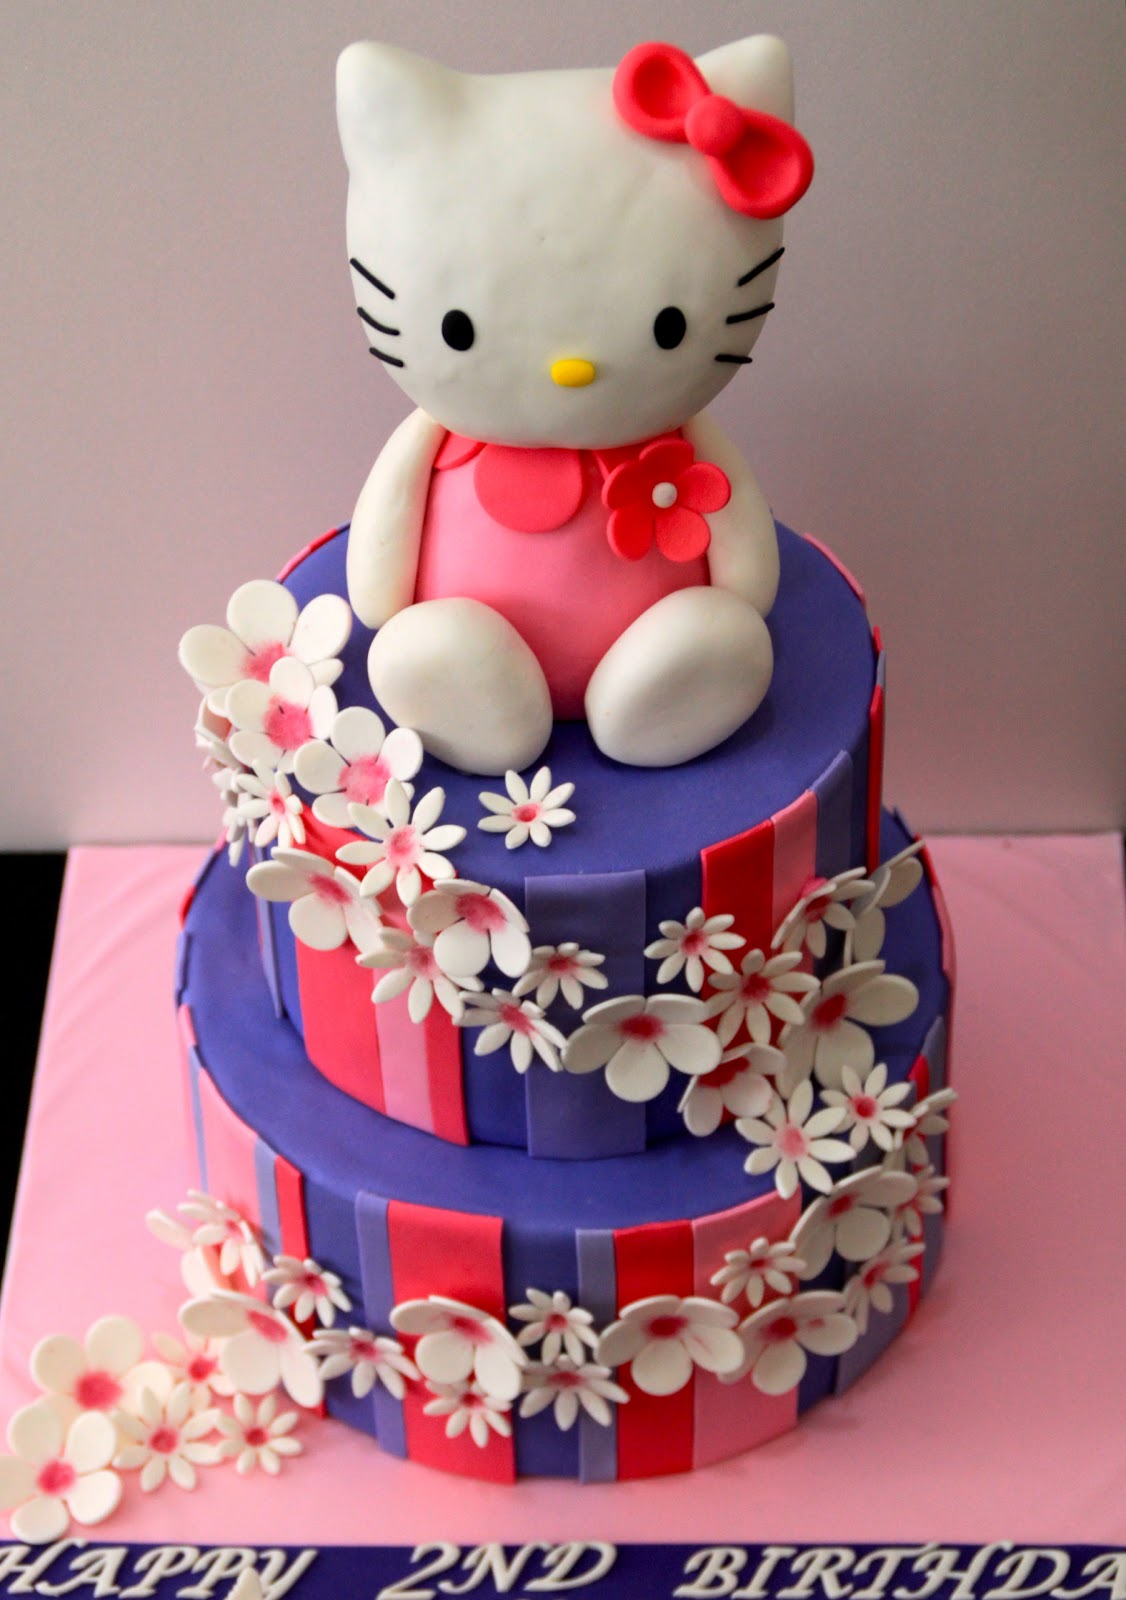 Celebrate with Cake Hello Kitty Cake